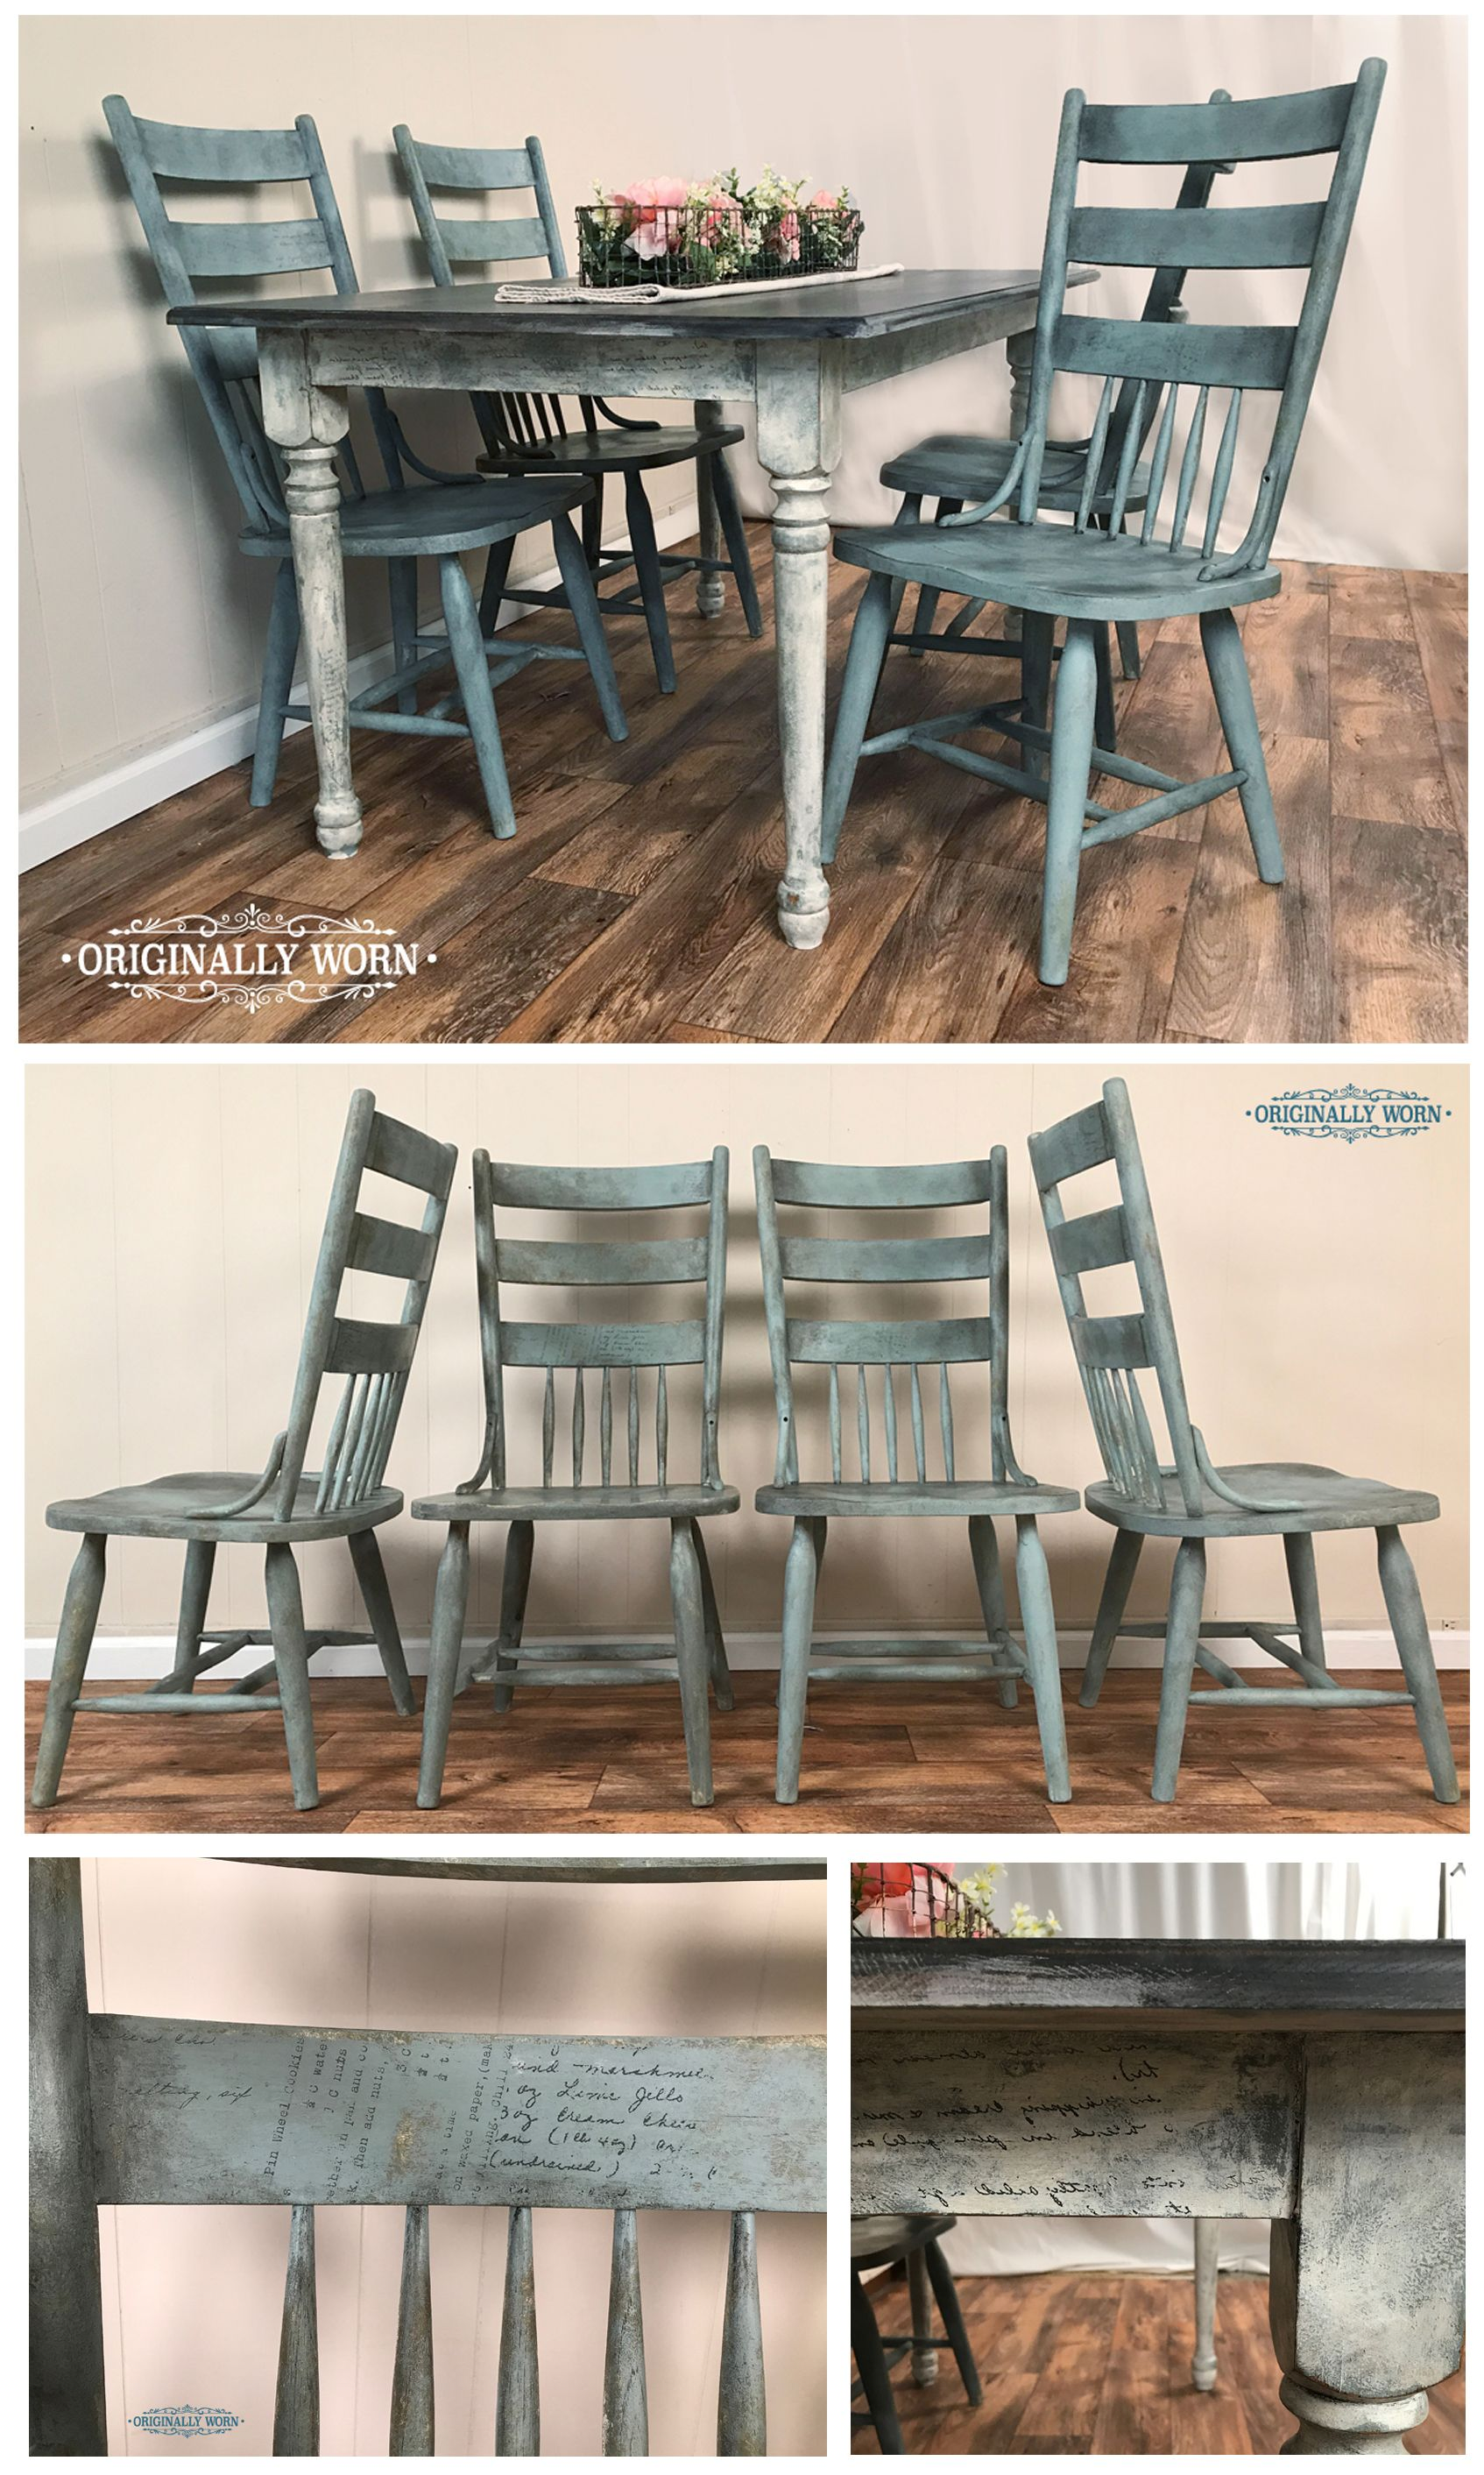 Dining Table And Chairs Done In Chalk Paint By Annie Sloan In Old White Chateau Grey Du Painted Kitchen Tables Chalk Paint Kitchen Table Chalk Paint Kitchen